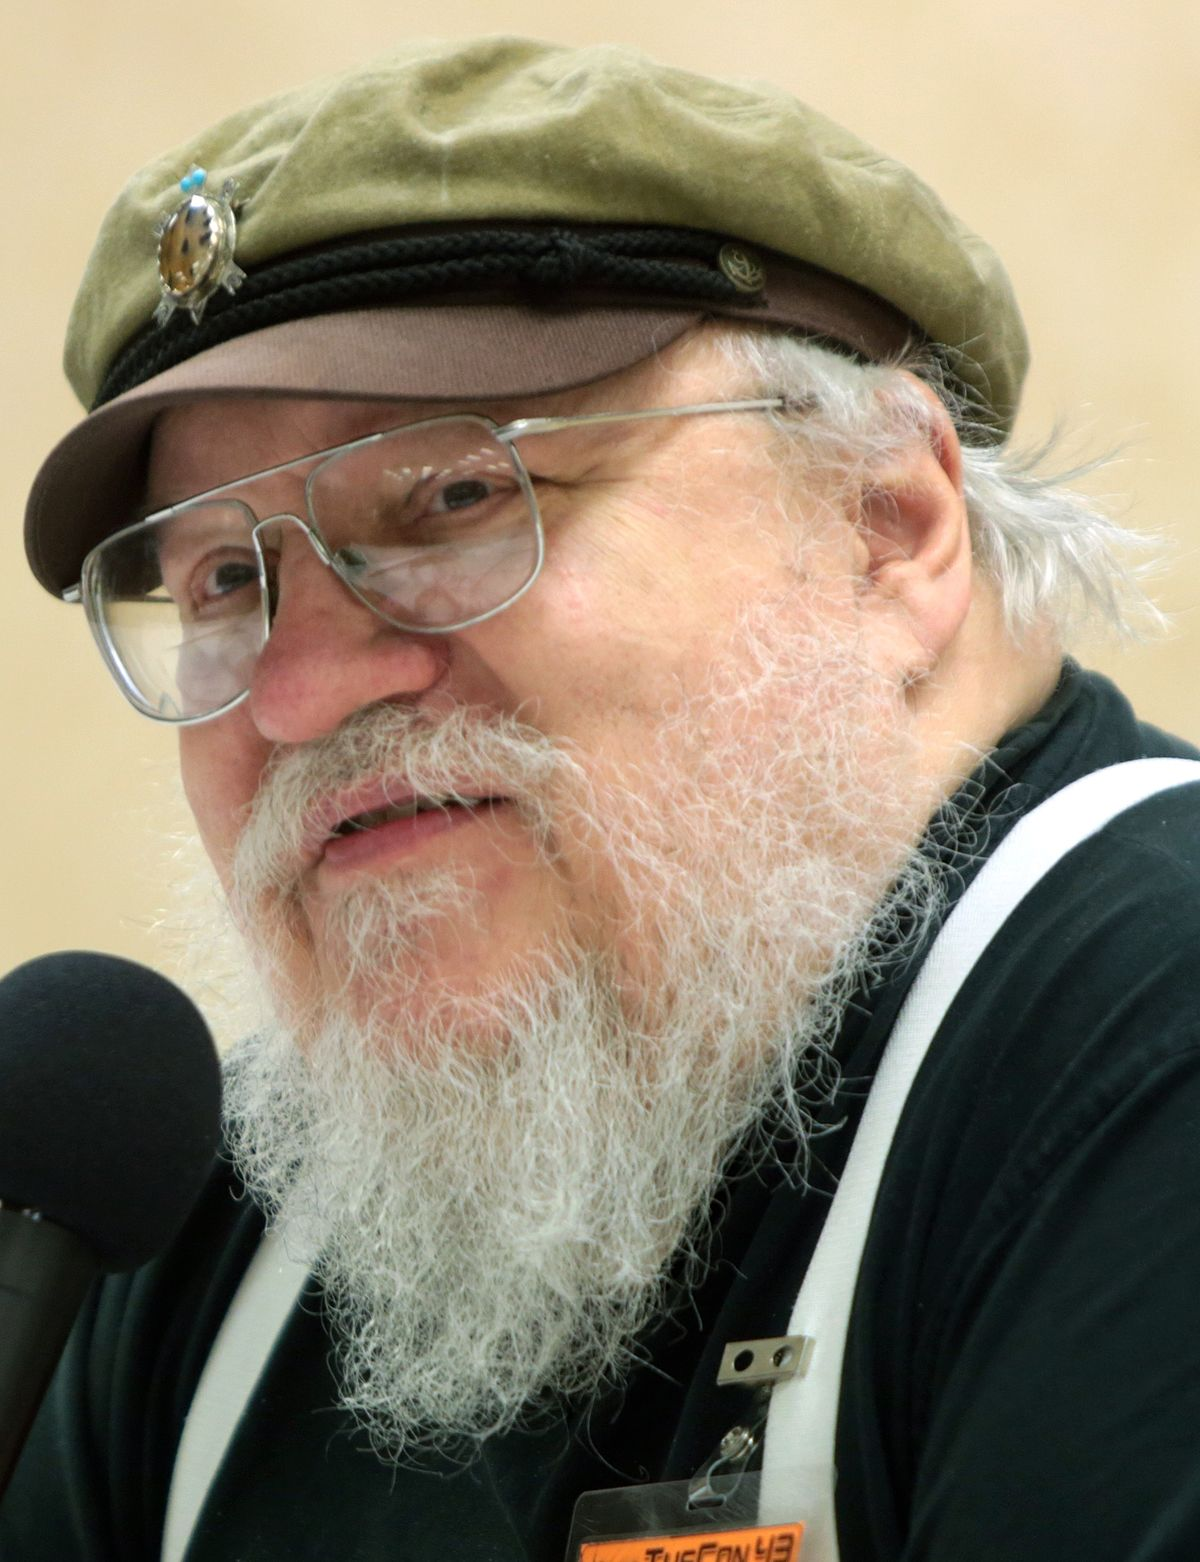 george r r martin 2 days ago  george r r martin says his game of thrones novels could have provided enough material to keep the popular hbo series going for another five seasons in a red carpet interview at the emmy awards .